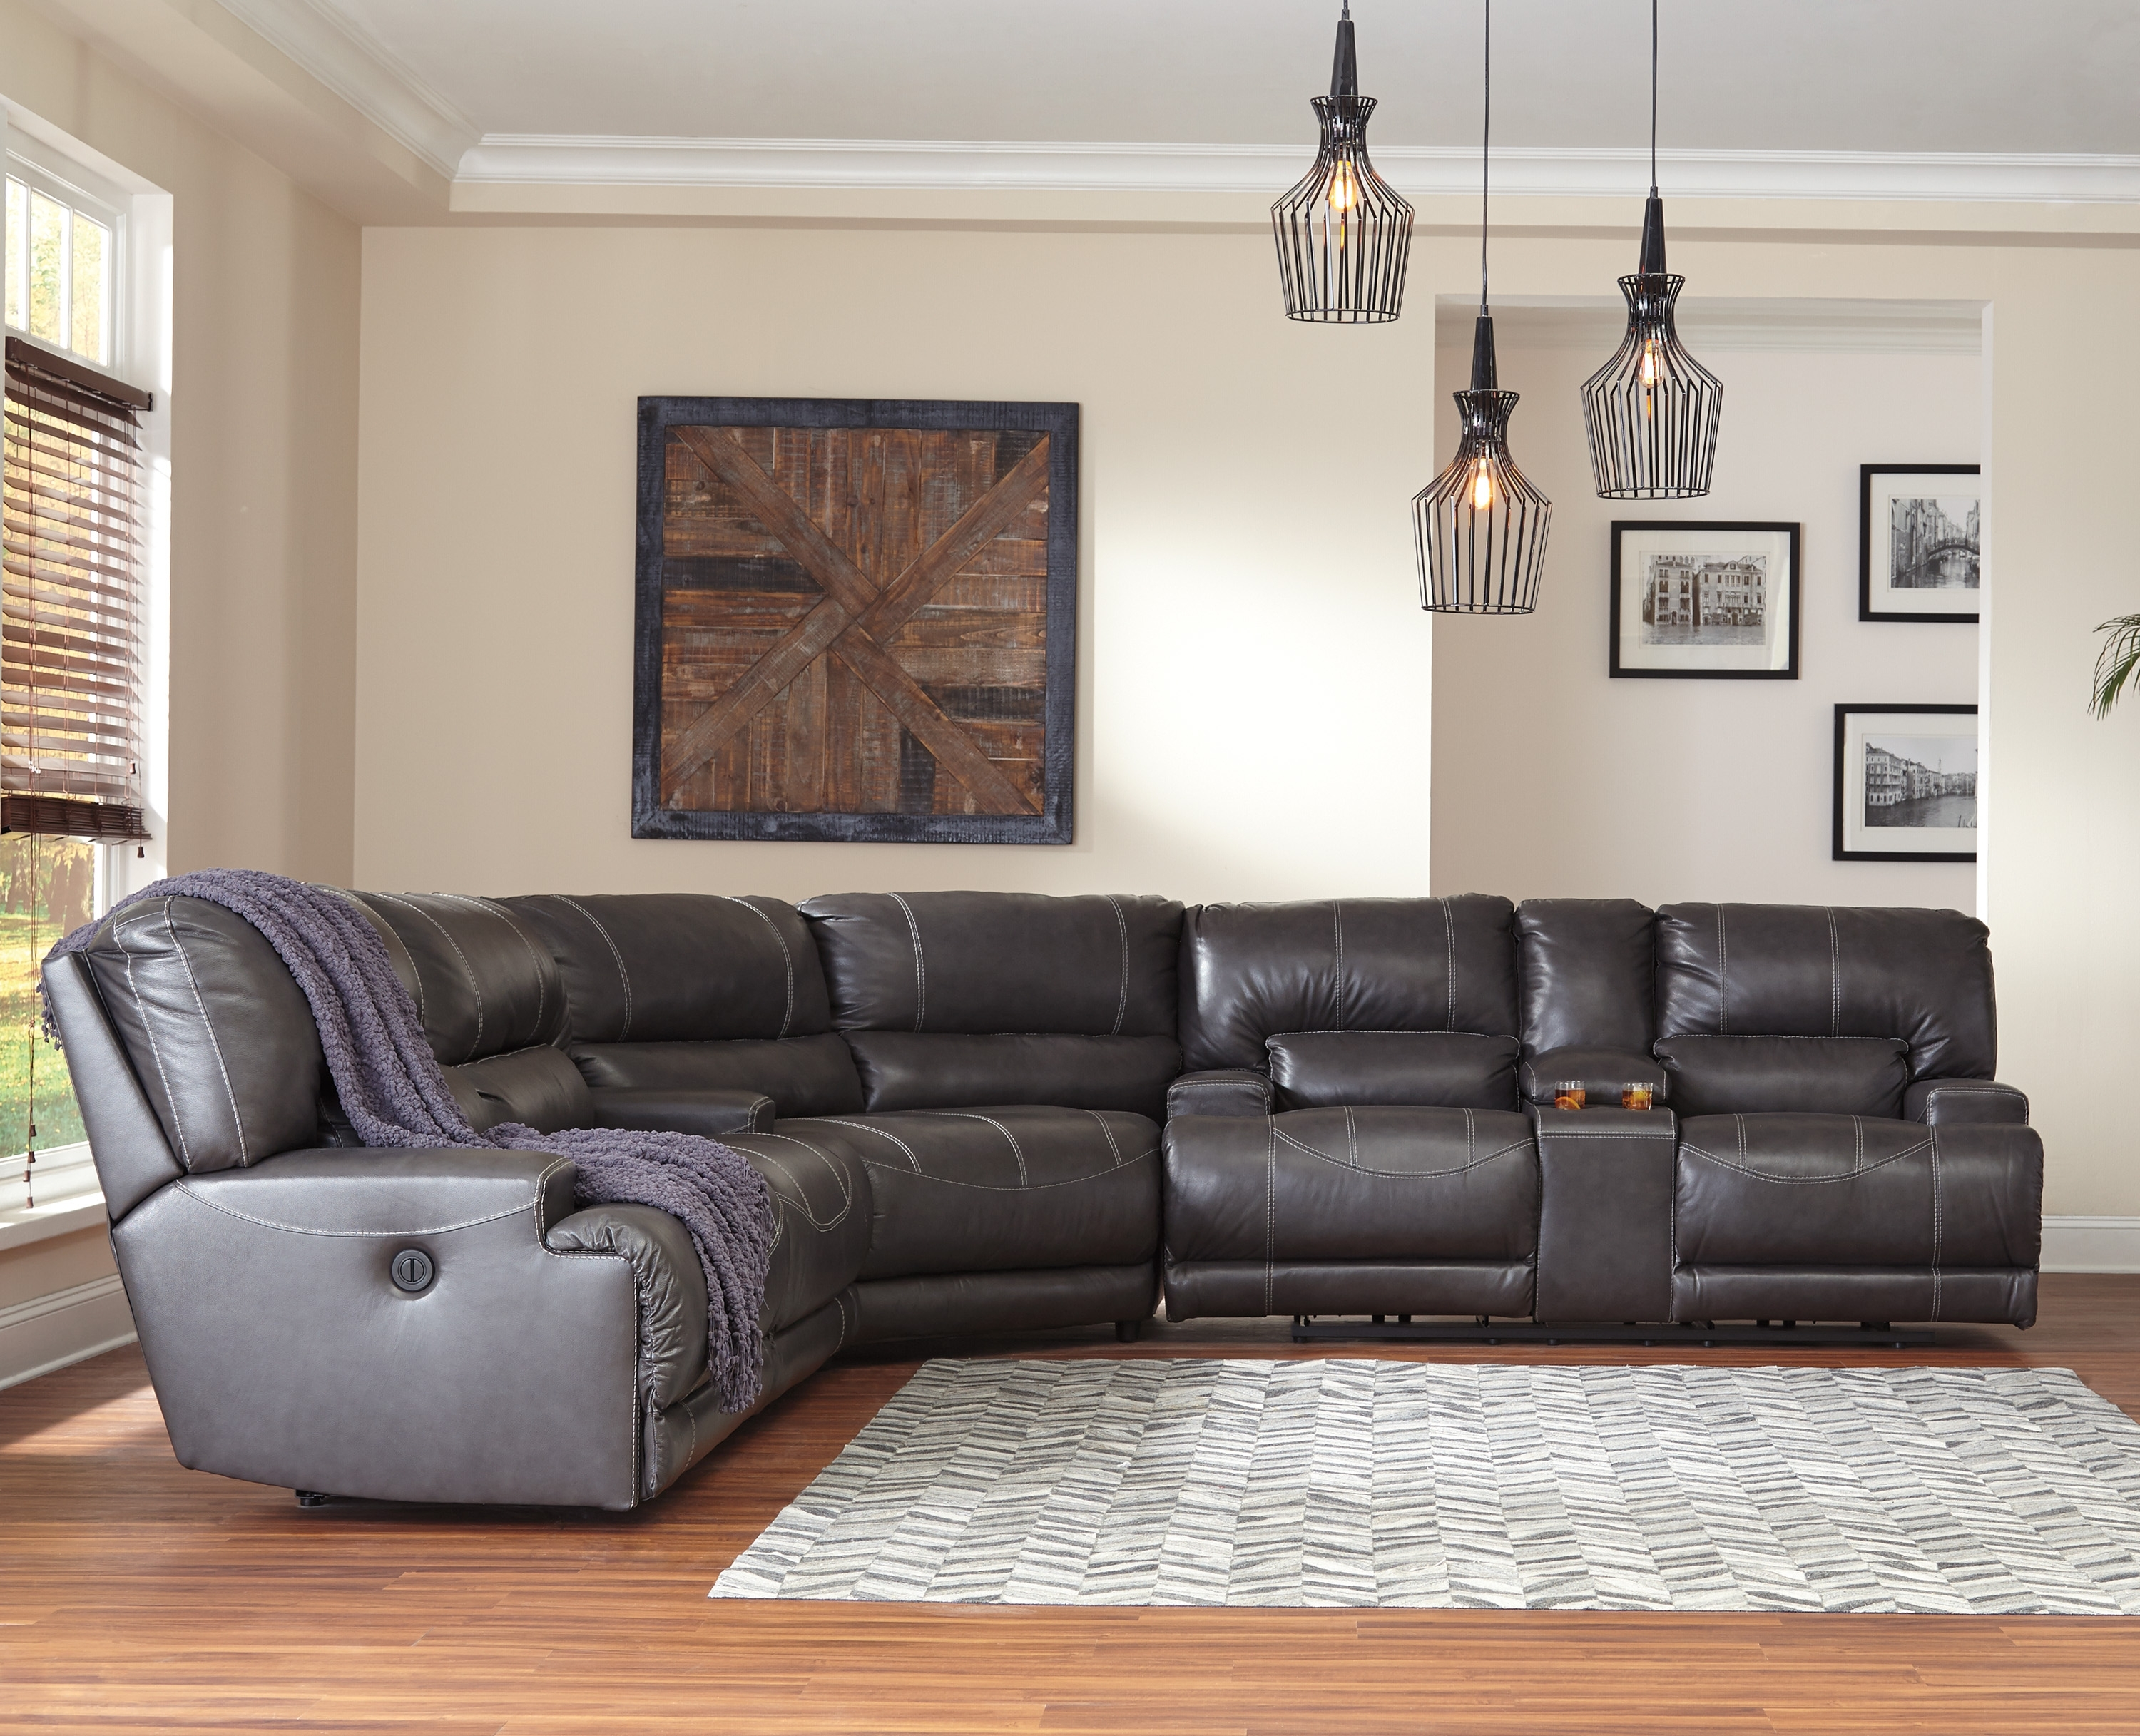 [%Mccaskill Collection U60900 100% Genuine Leather Sectional With Pertaining To Preferred Sectional Sofas With Power Recliners|Sectional Sofas With Power Recliners Throughout Newest Mccaskill Collection U60900 100% Genuine Leather Sectional With|Well Known Sectional Sofas With Power Recliners With Mccaskill Collection U60900 100% Genuine Leather Sectional With|Latest Mccaskill Collection U60900 100% Genuine Leather Sectional With Intended For Sectional Sofas With Power Recliners%] (View 13 of 15)